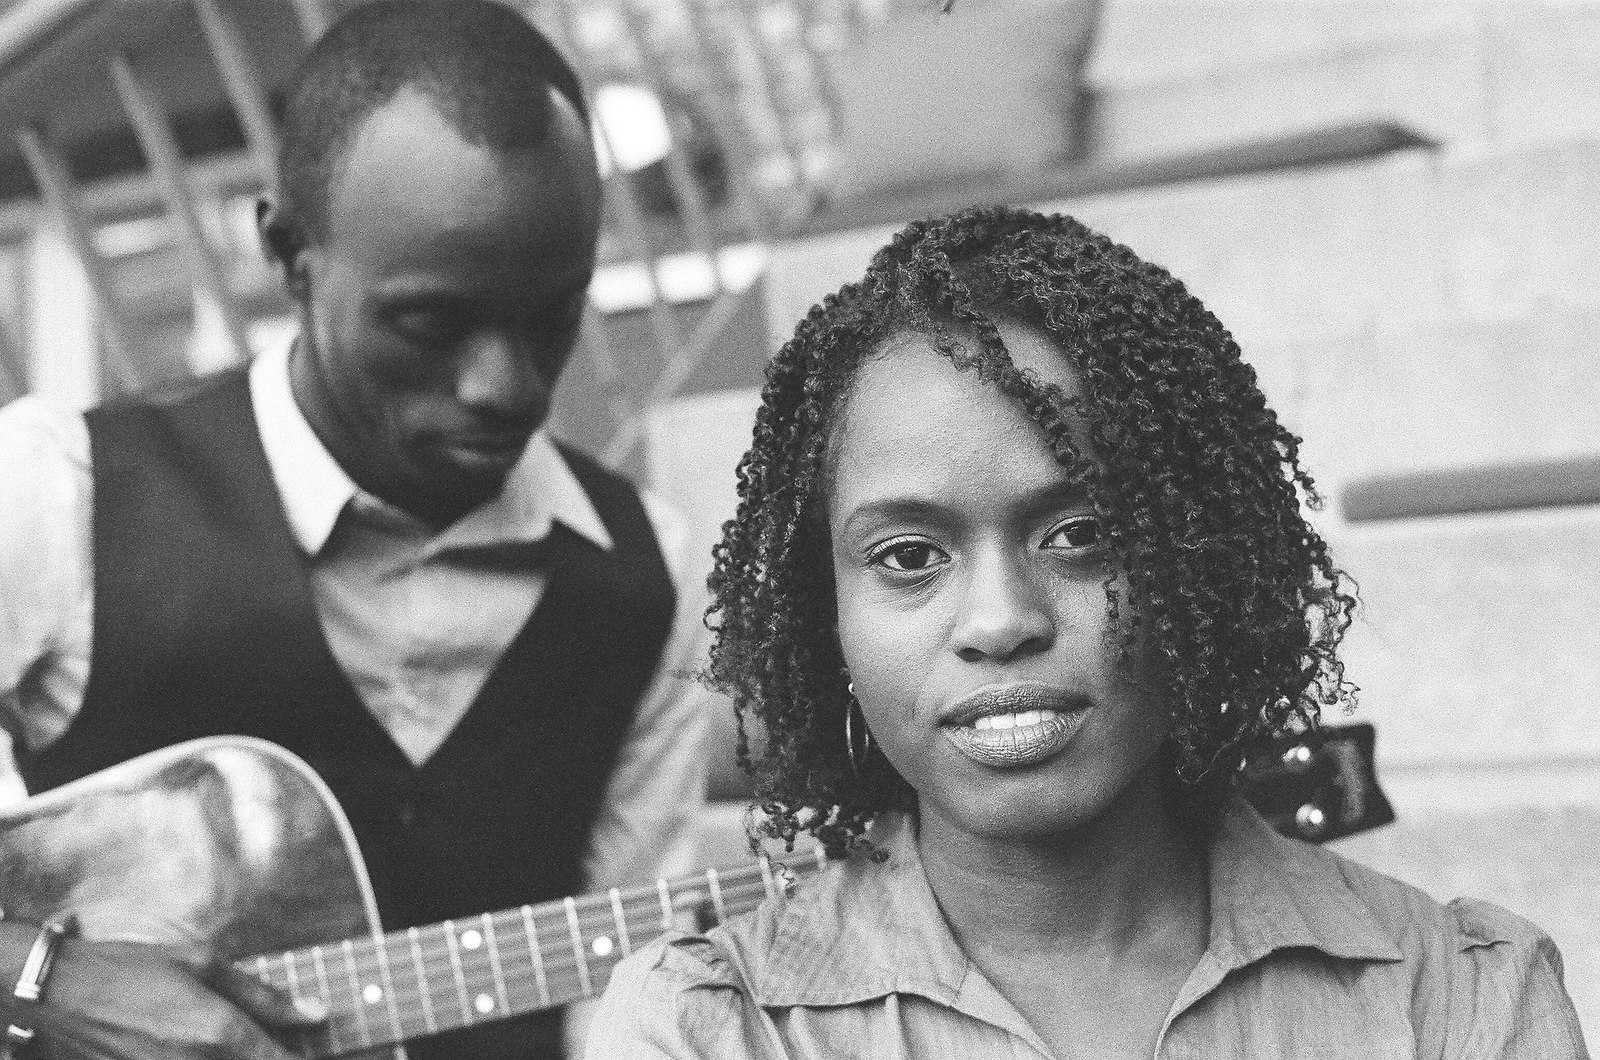 black and white photo of bride with groom holding guitar in background